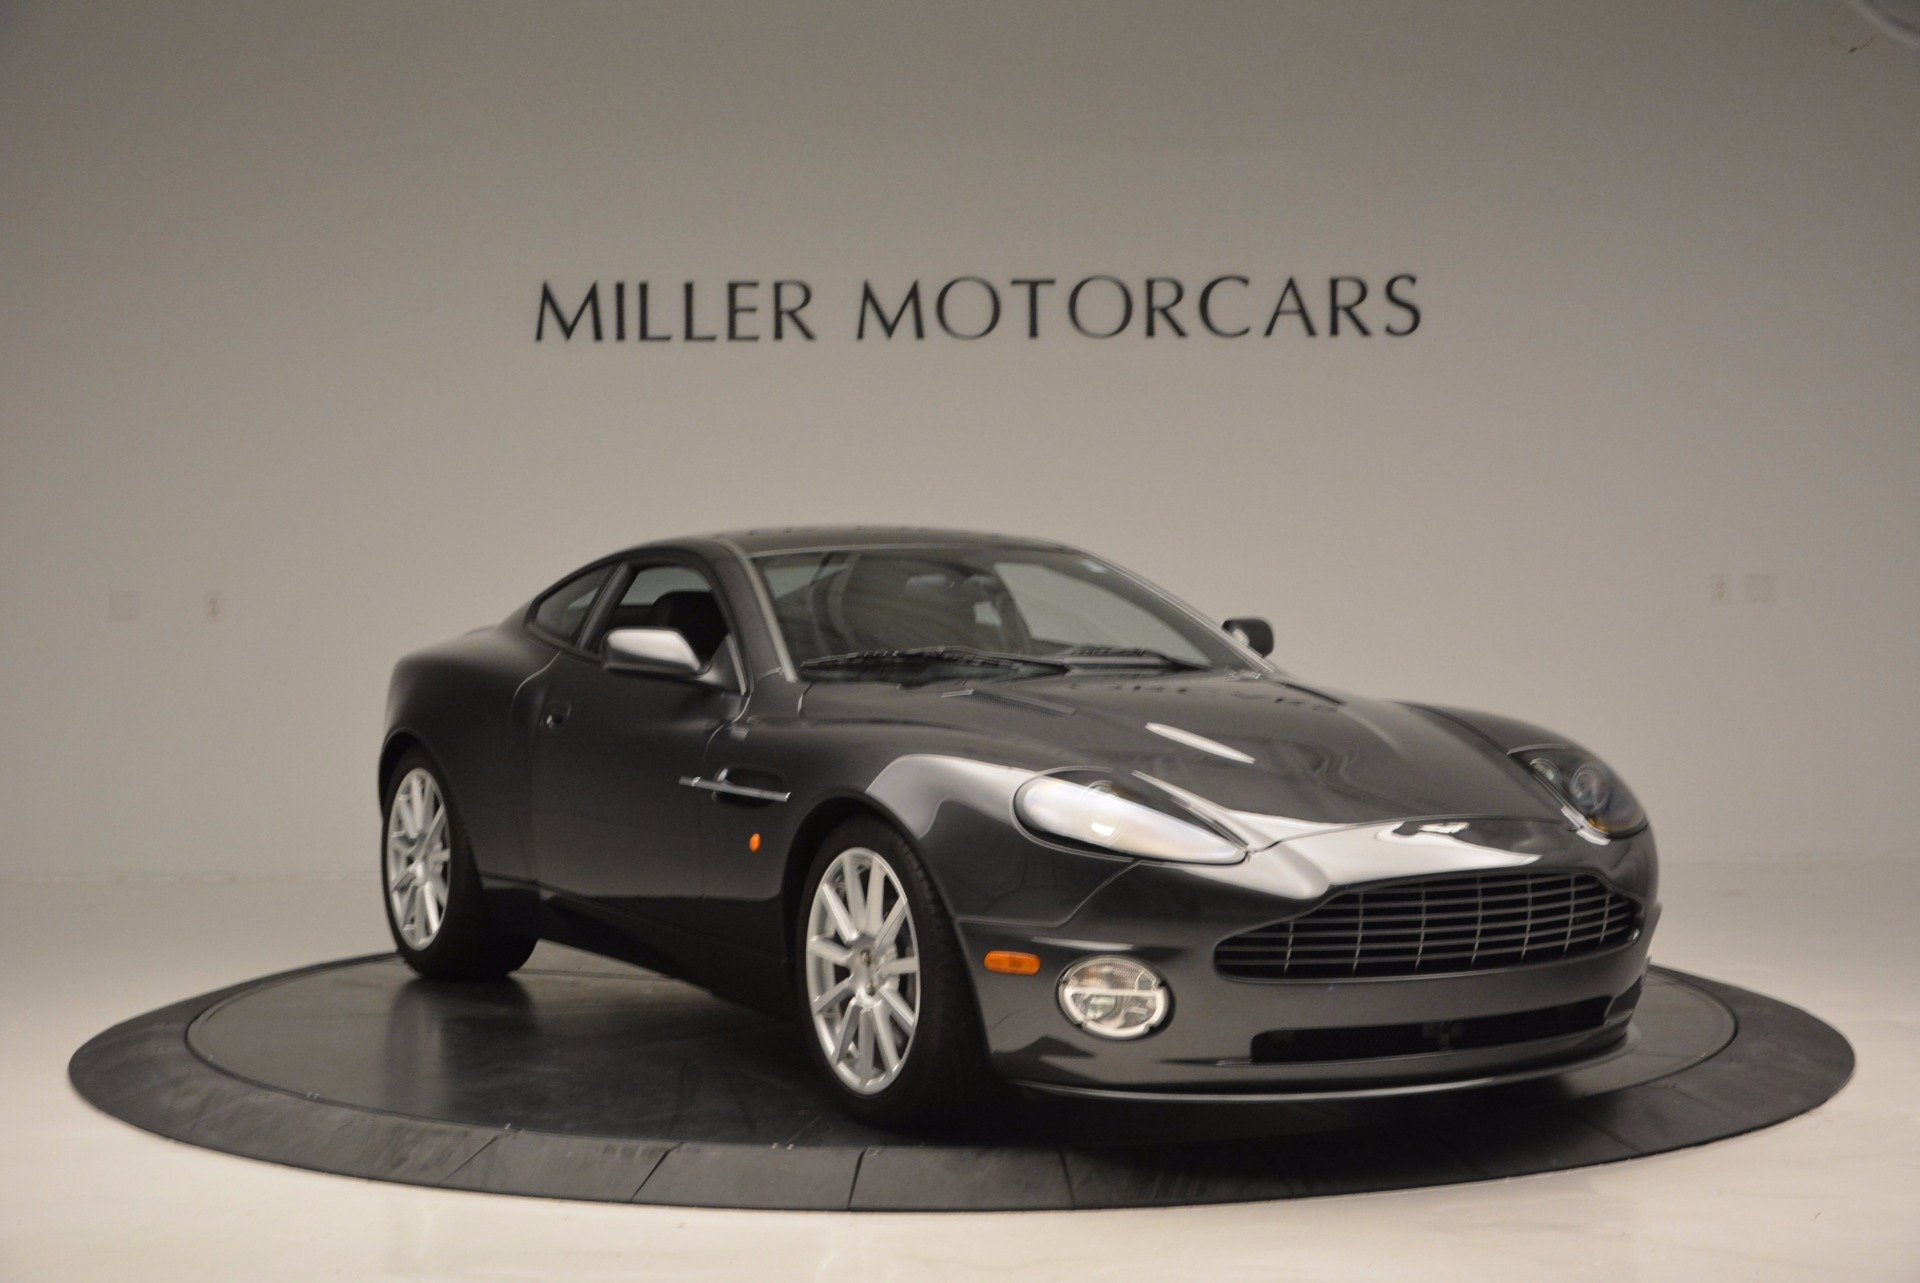 Used 2005 Aston Martin V12 Vanquish S For Sale In Greenwich, CT 645_p11